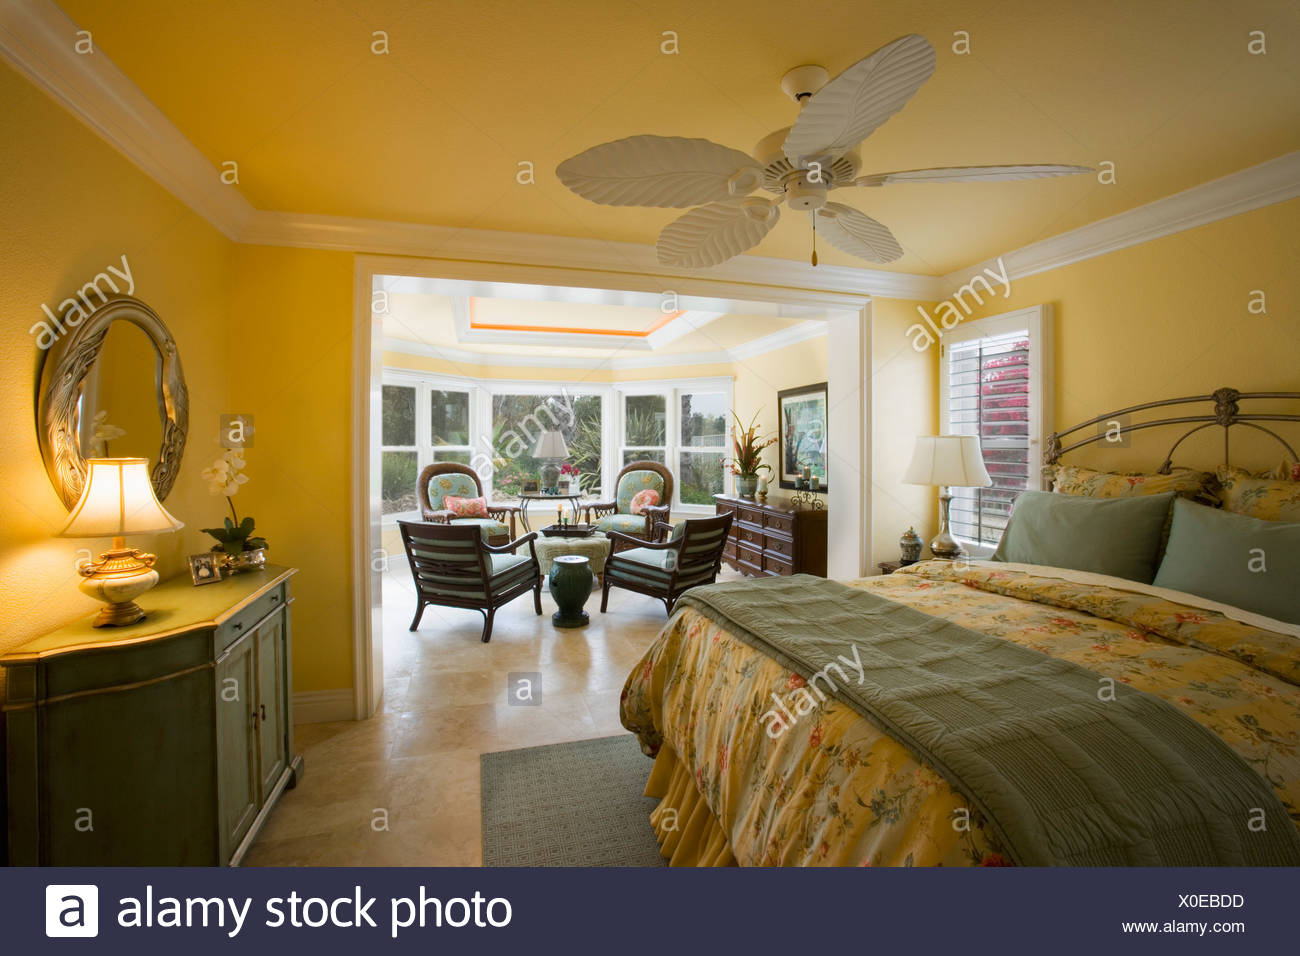 Large Yellow Master Bedroom With Sunroom Stock Photo 275682217 Alamy